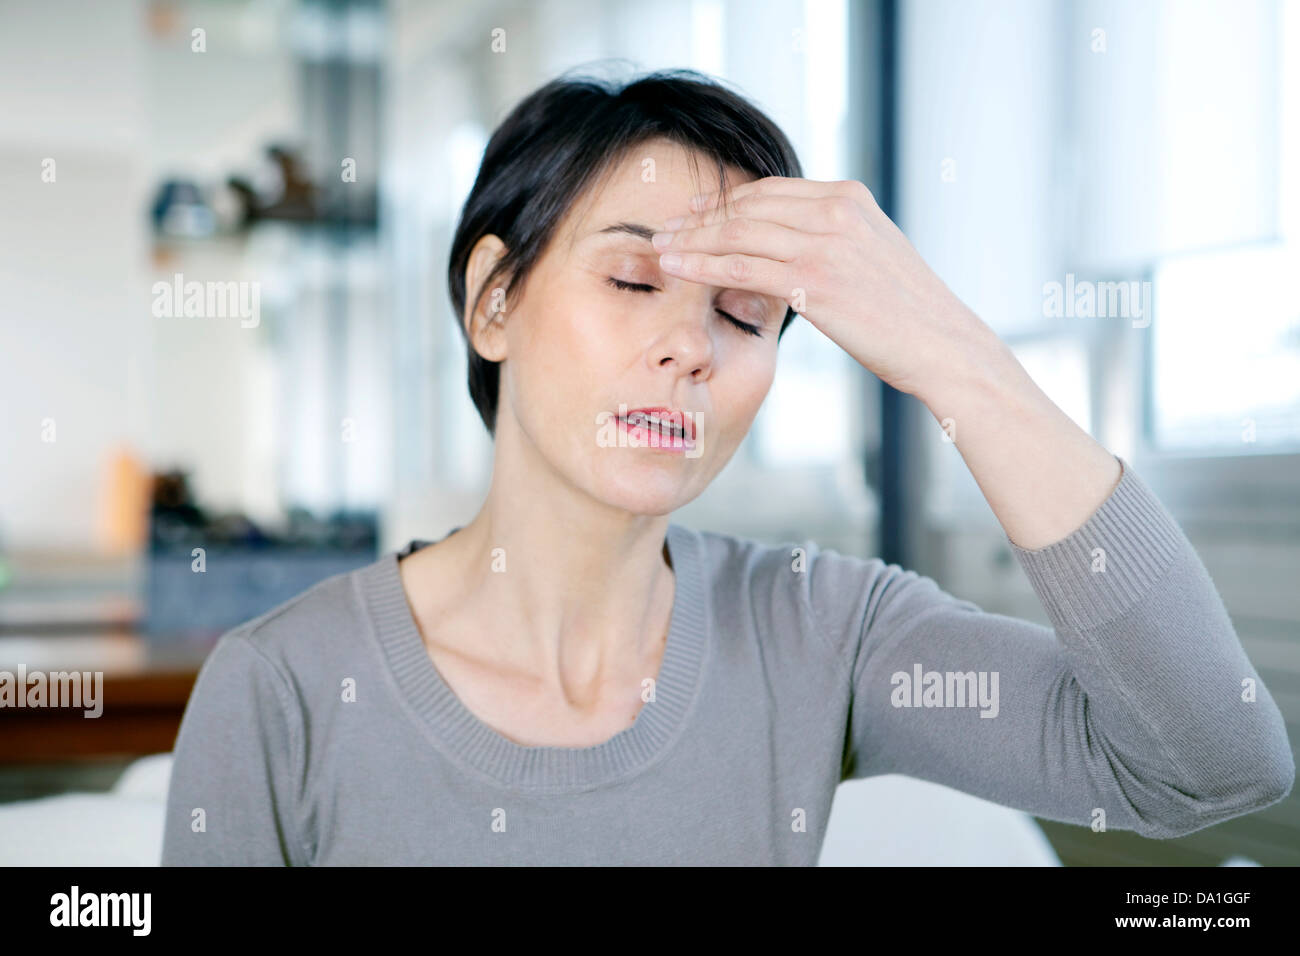 WOMAN WITH A MIGRAINE - Stock Image